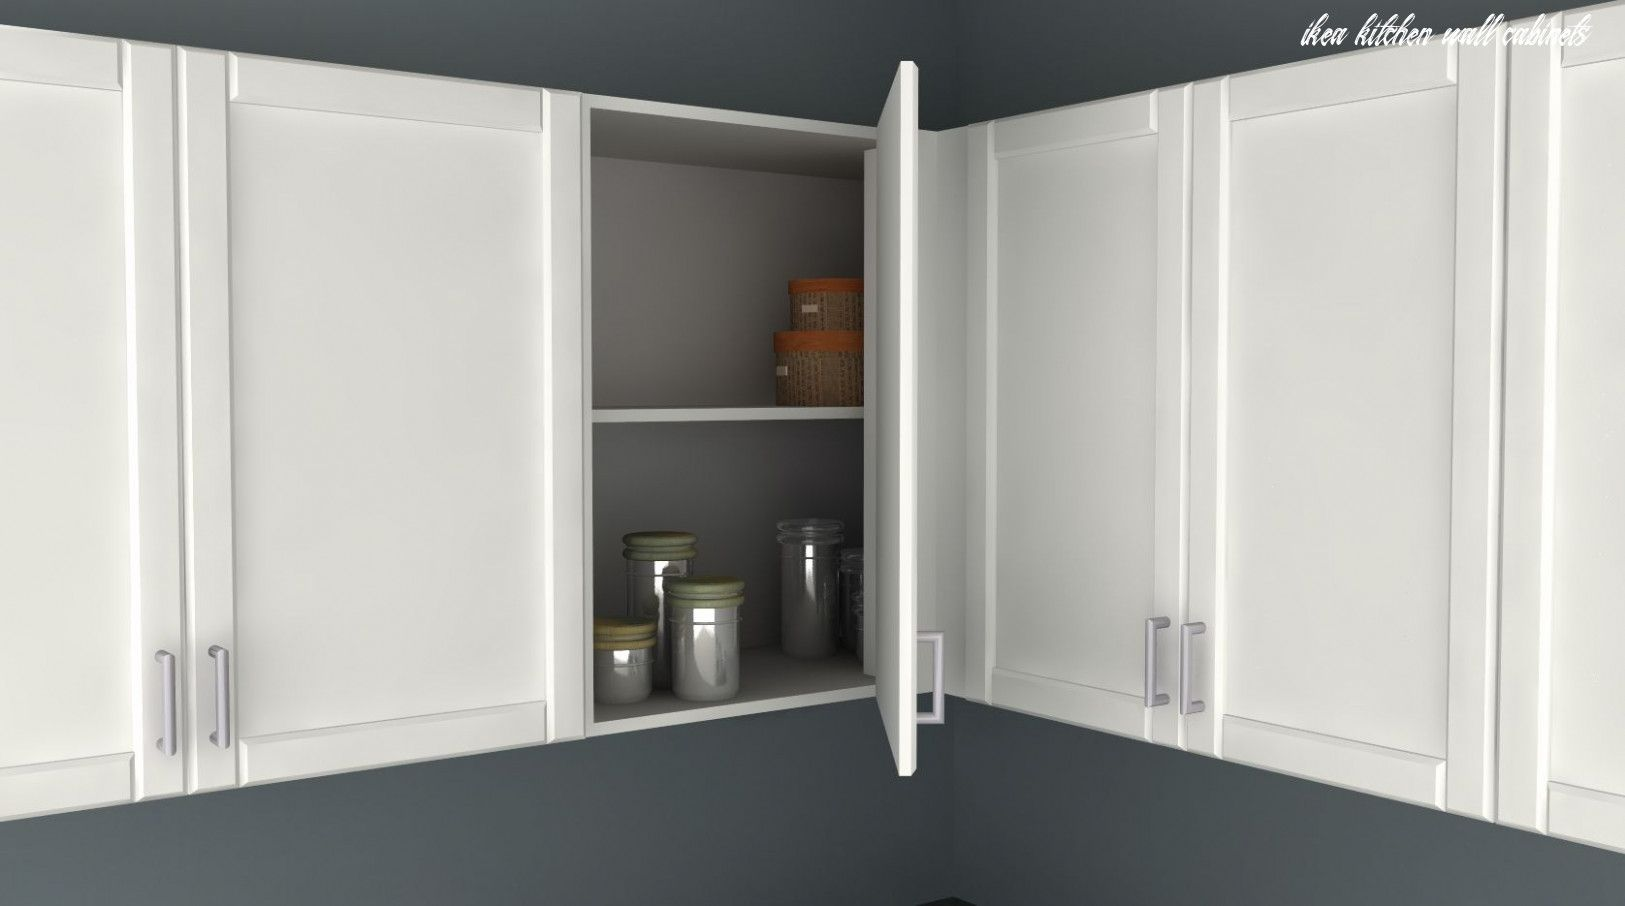 5 Top Risks Of Ikea Kitchen Wall Cabinets In 2020 Ikea Wall Cabinets Kitchen Wall Cabinets Ikea Corner Cabinet